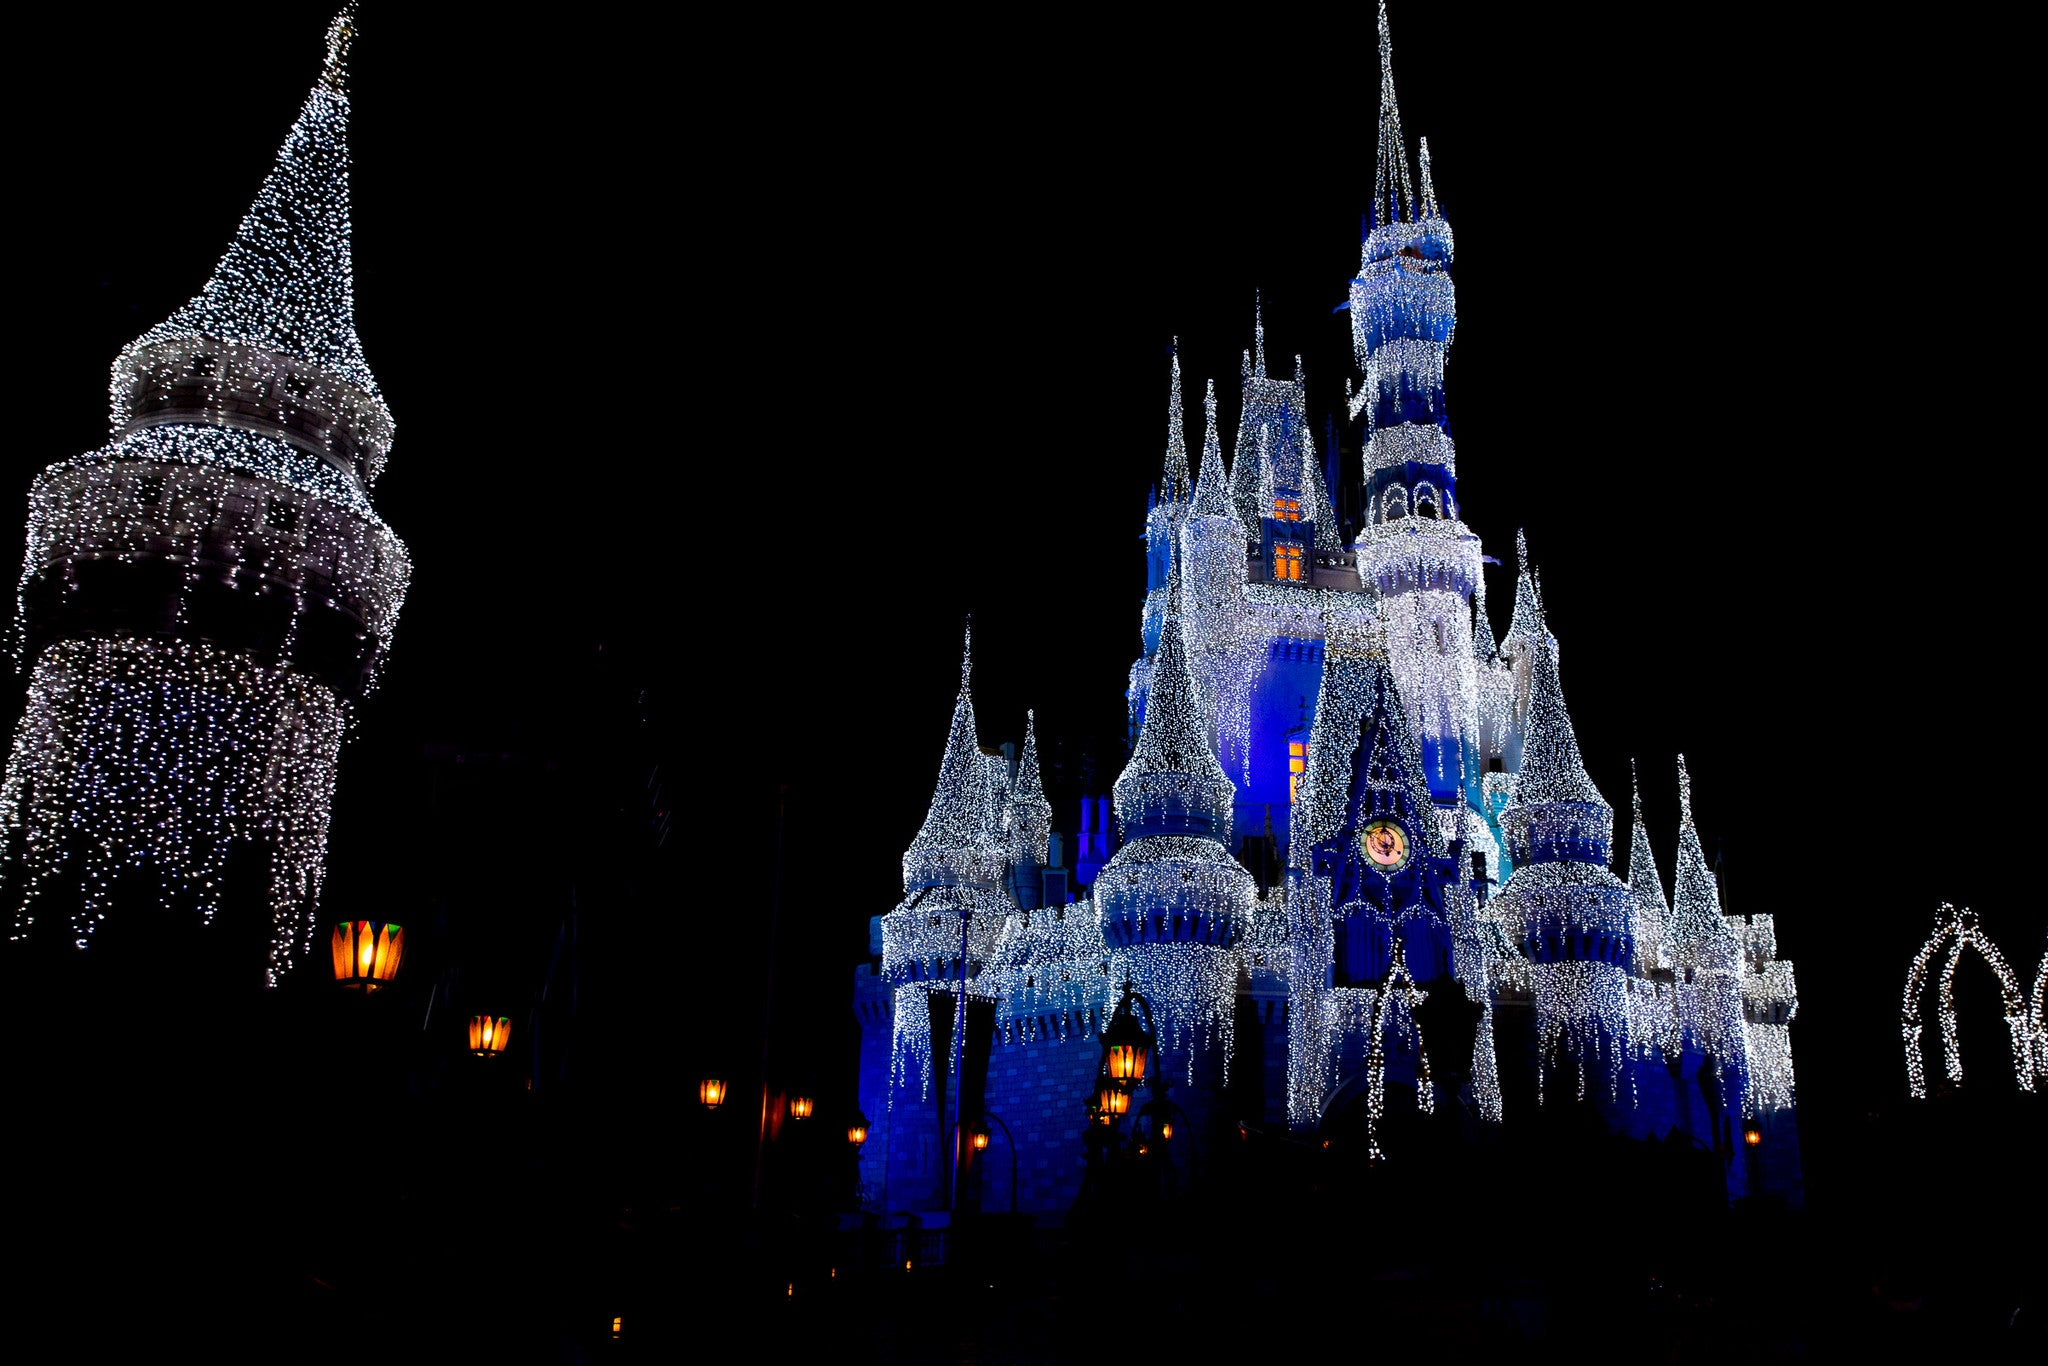 Disney World Orlando Florida, Mickey's Very Merry Christmas Party